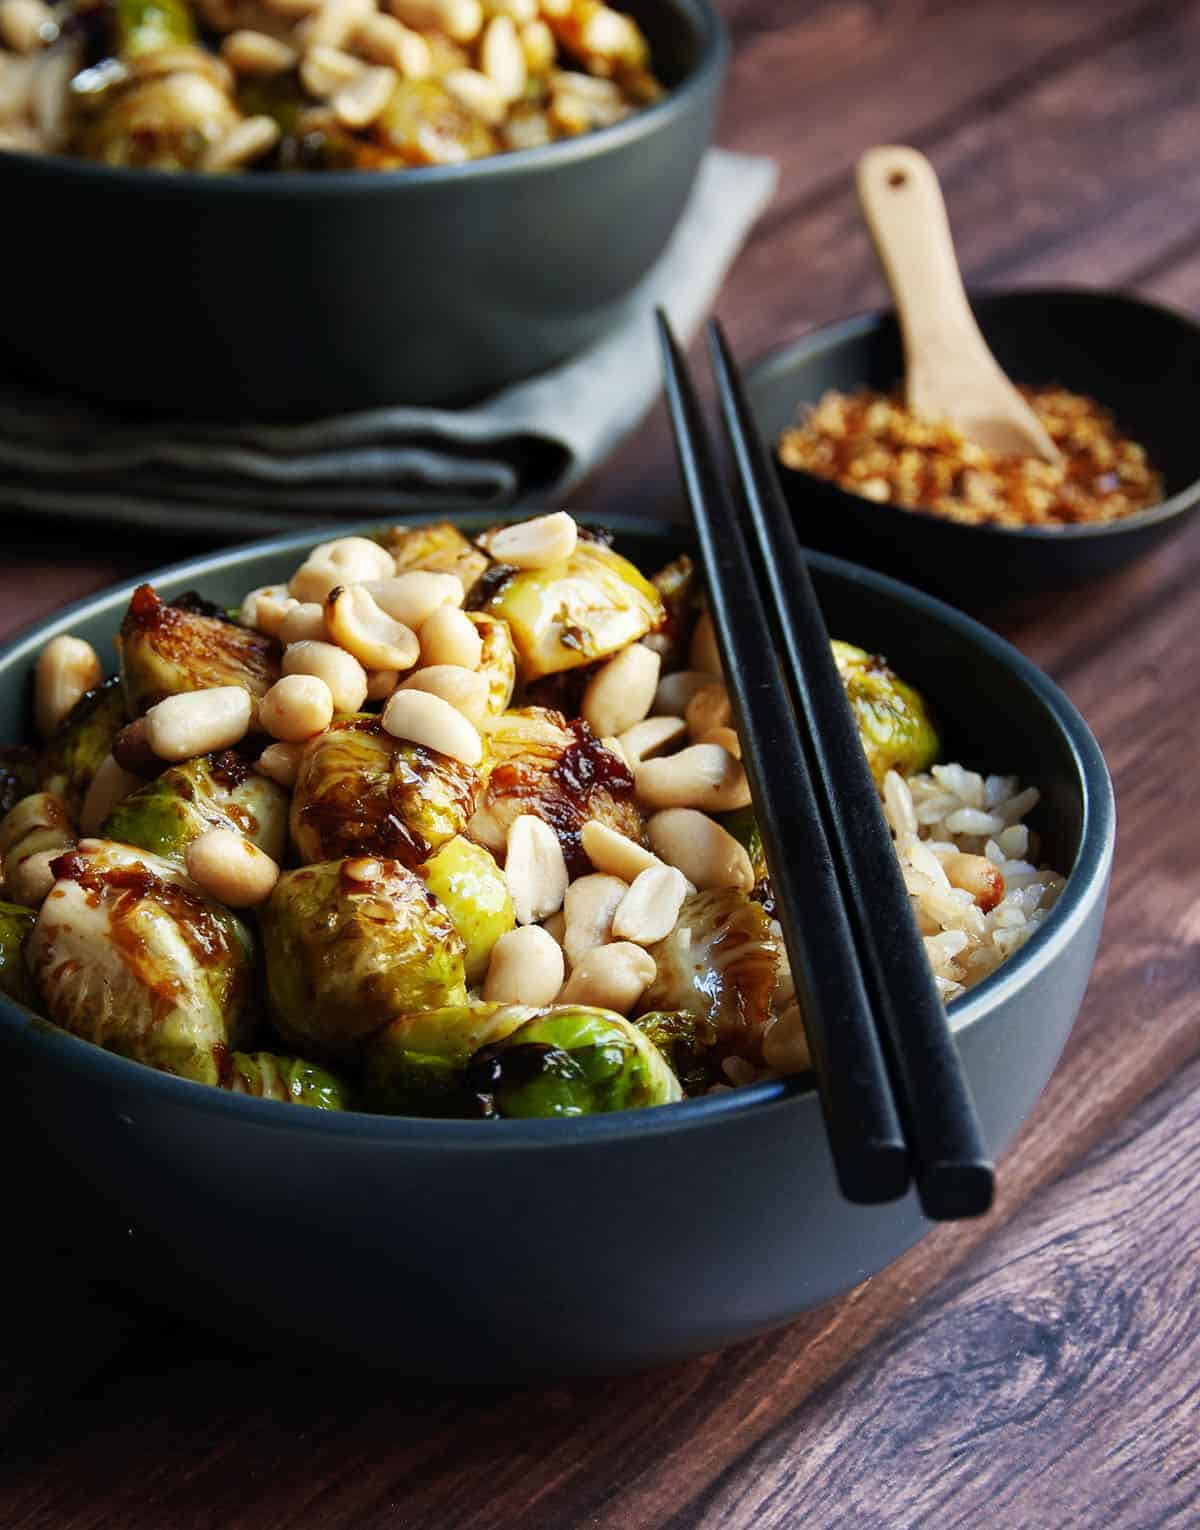 Kung Pao Brussels Sprouts served in a black bowl with chopsticks